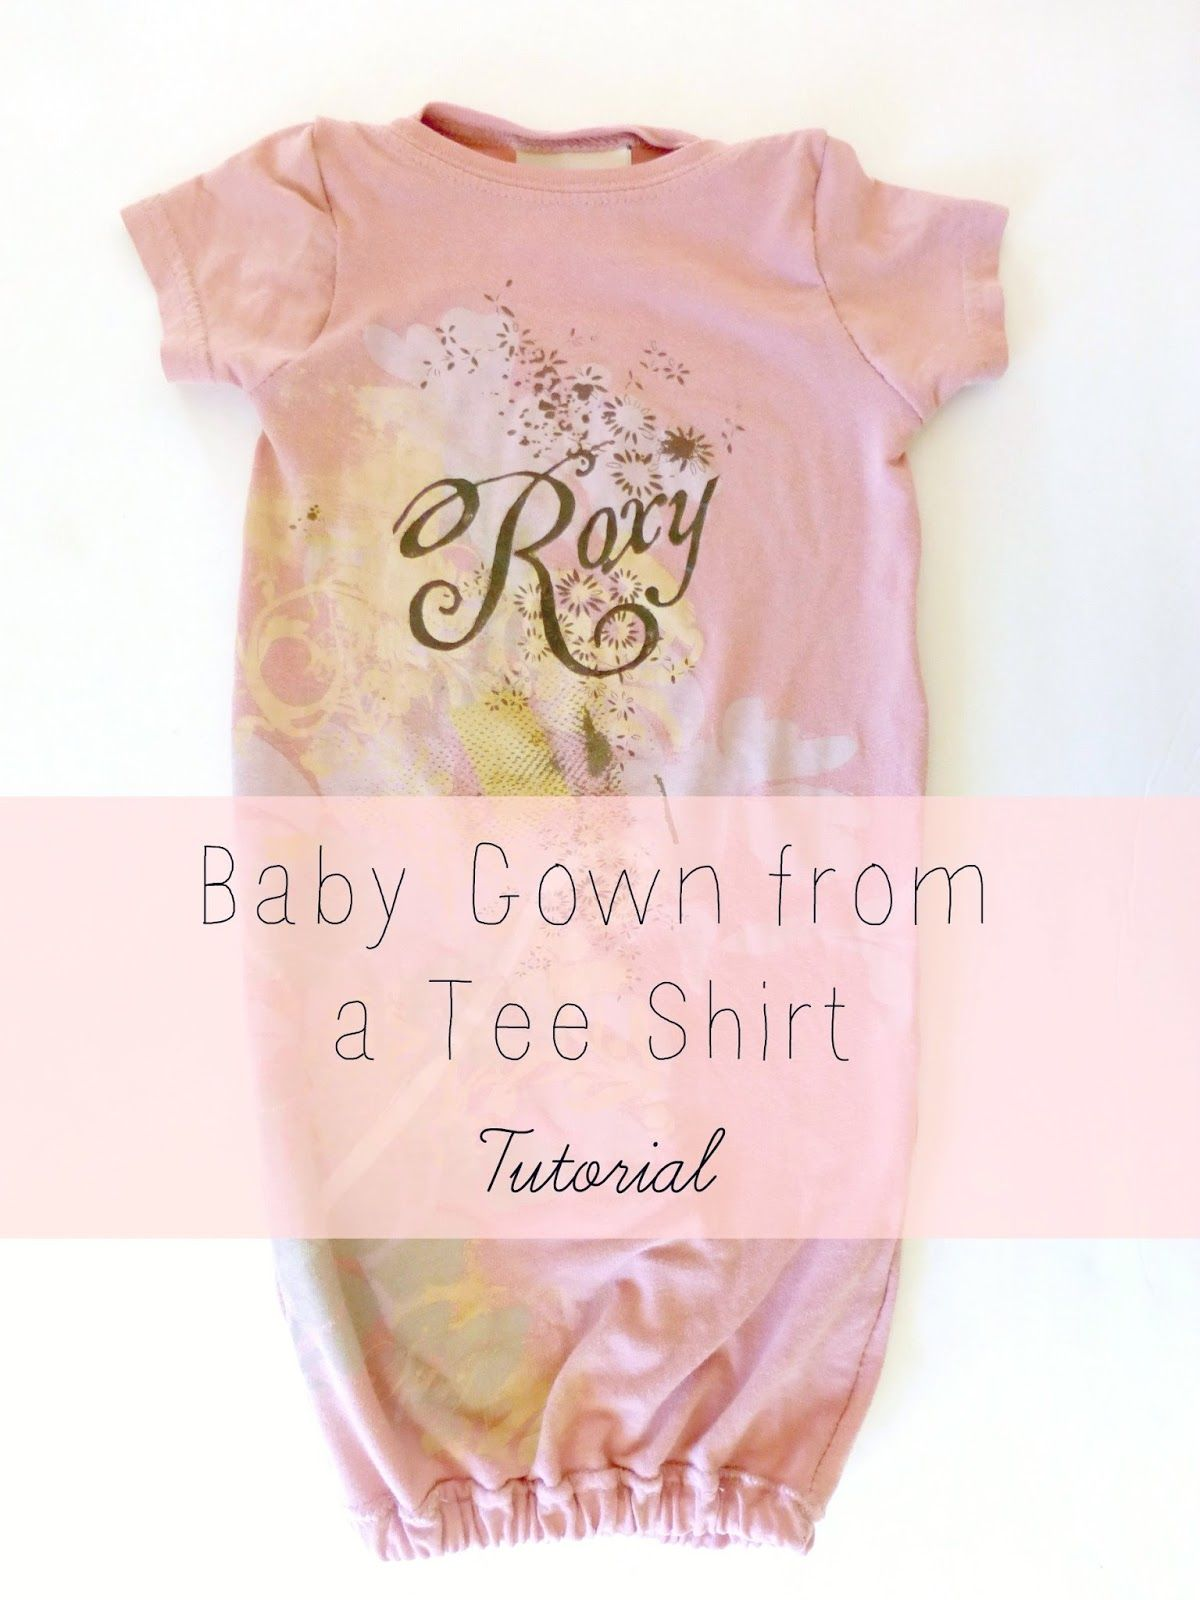 Domestic+Bliss+Squared:+DIY+baby+gown+from+an+adult+tee+shirt ...